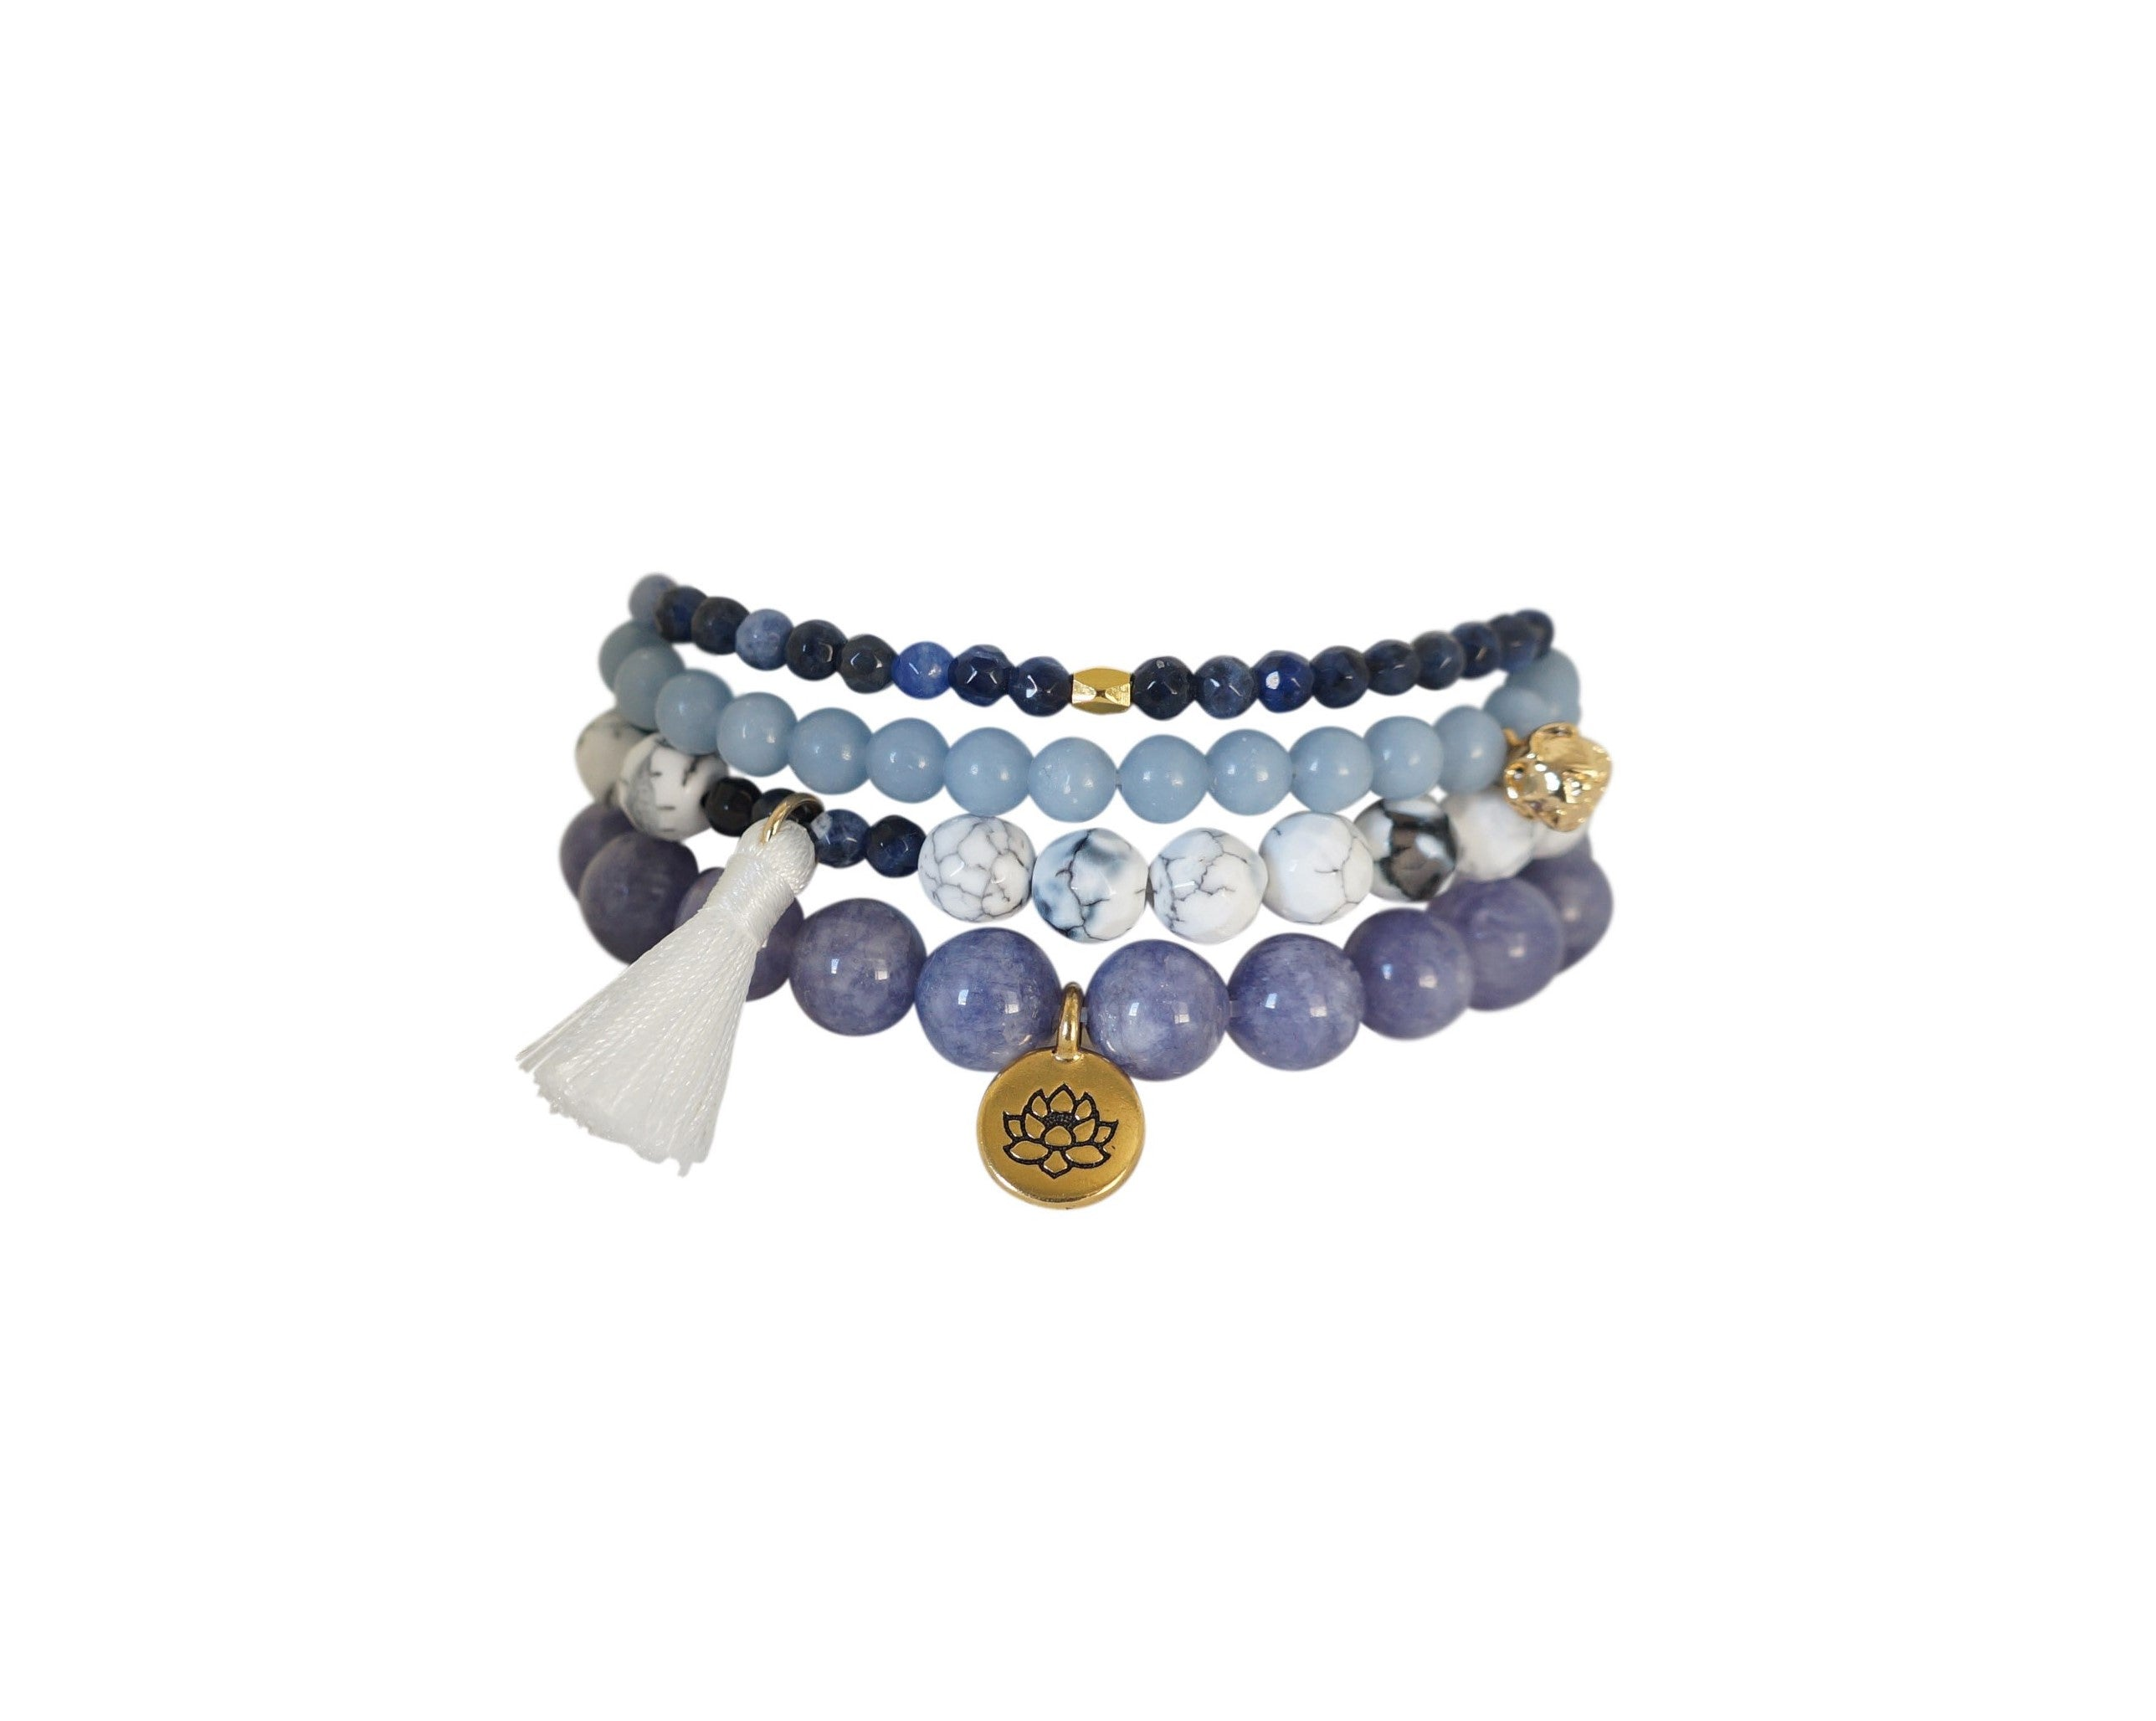 Tranquility Stack - Carolyn Hearn Designs